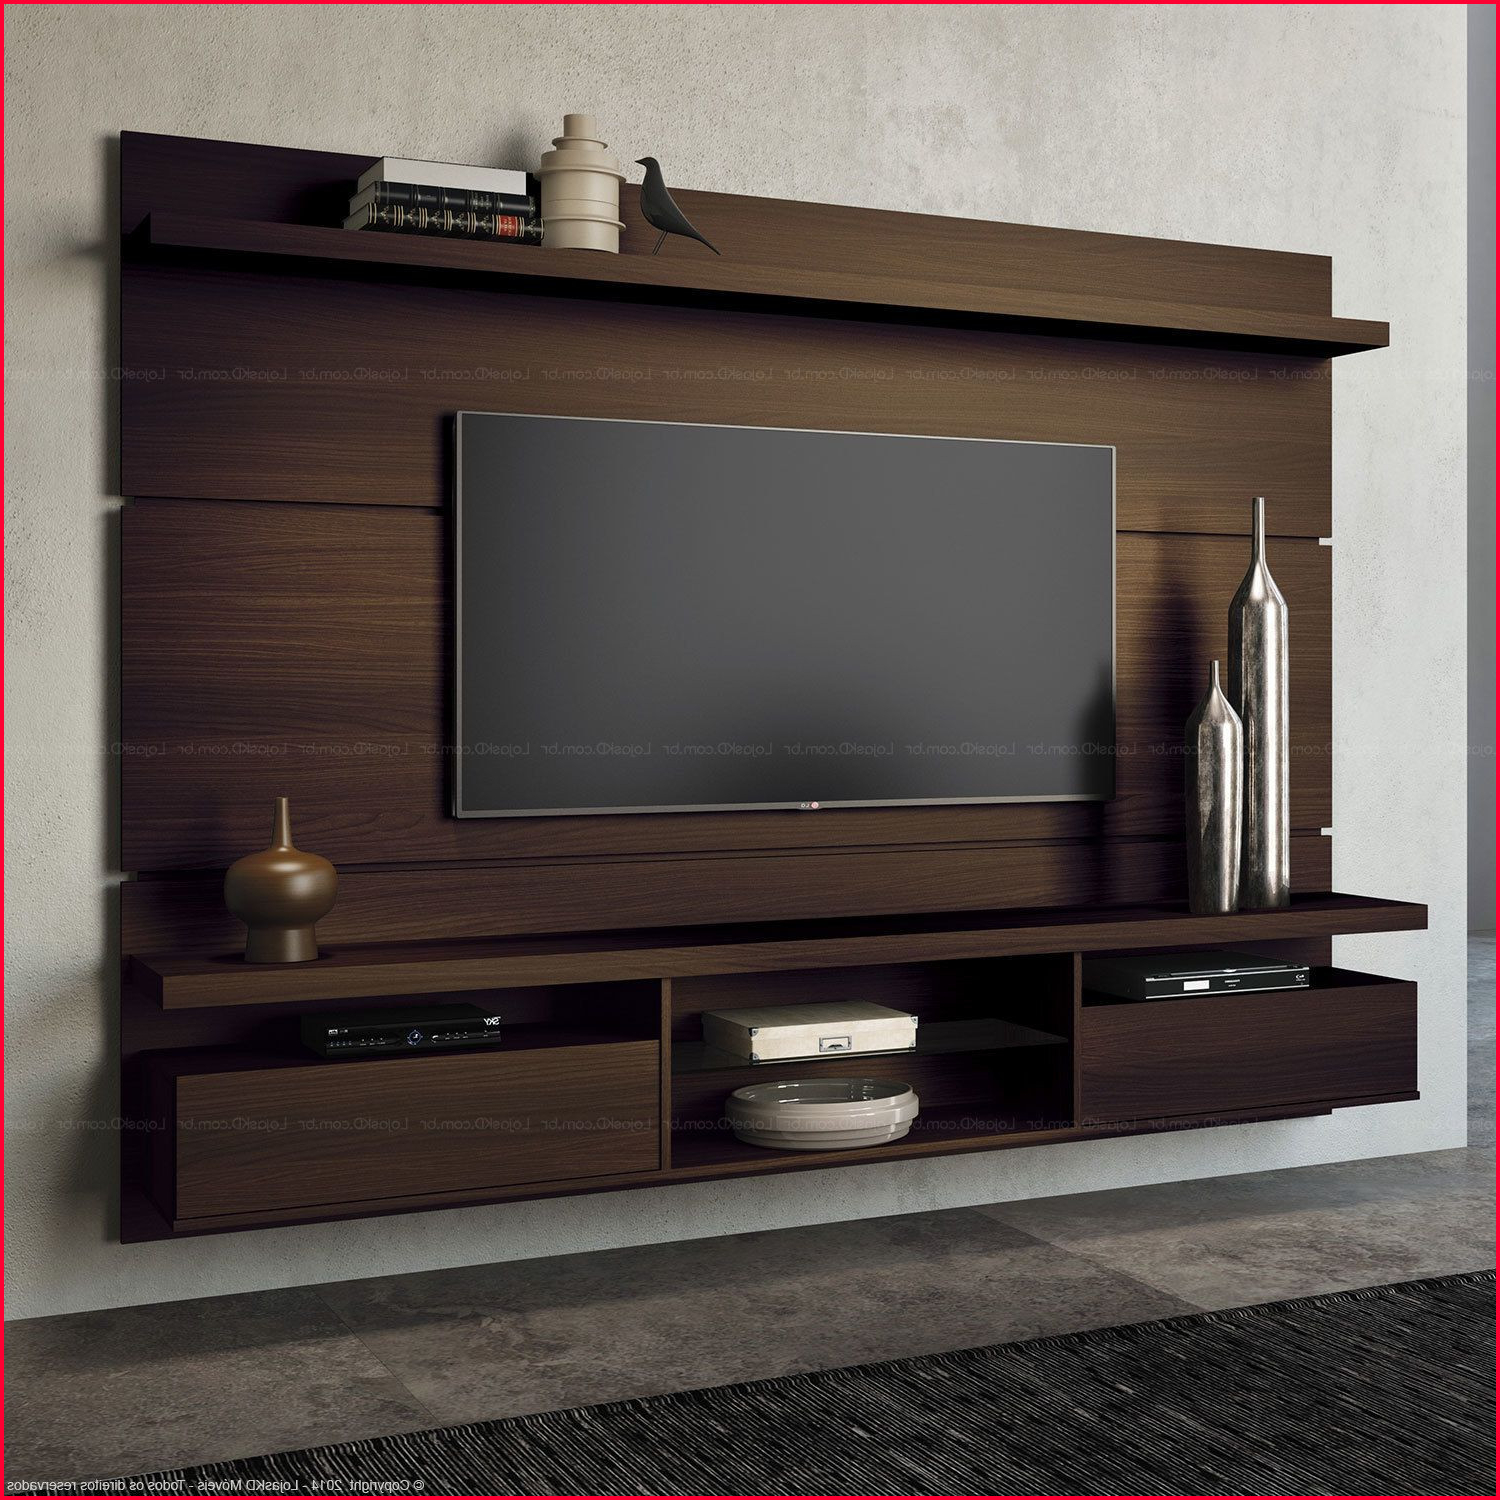 Muebles Para Tele Kvdd Muebles Para Tele Tv Wall Mount Style Ideas to Bine with Your